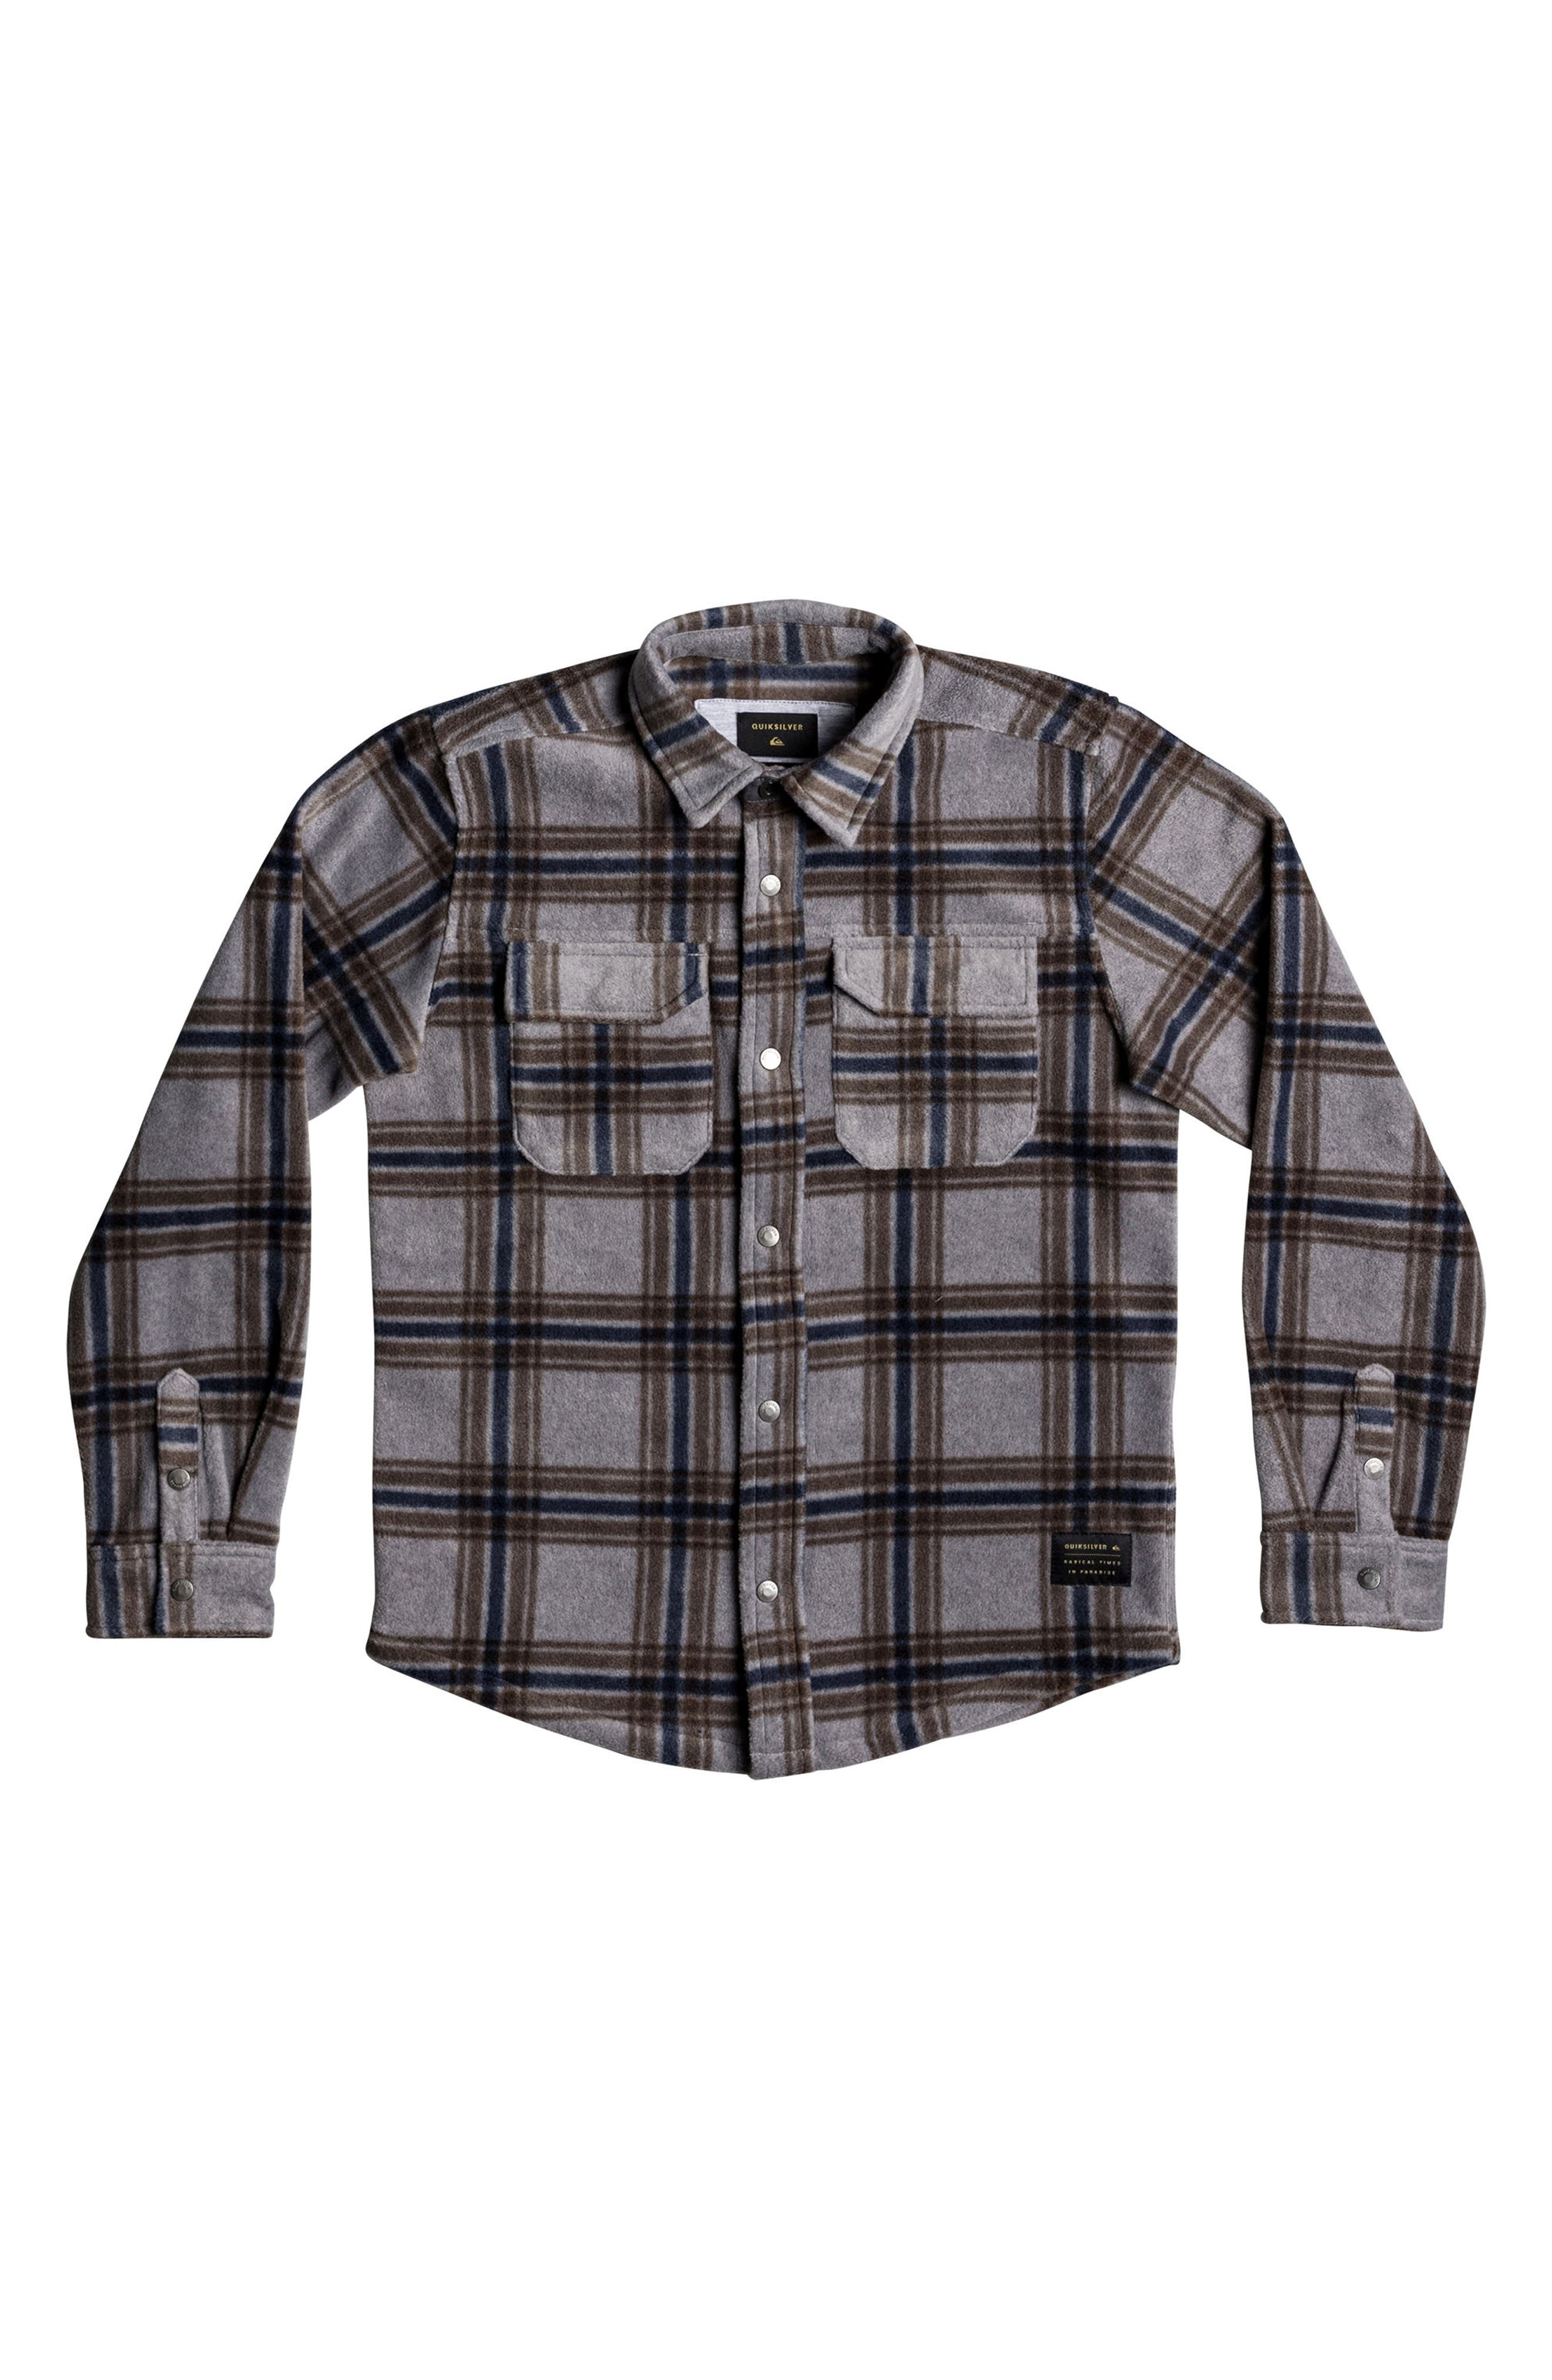 Surf Days Plaid Shirt,                         Main,                         color, Medium Grey Heather Check